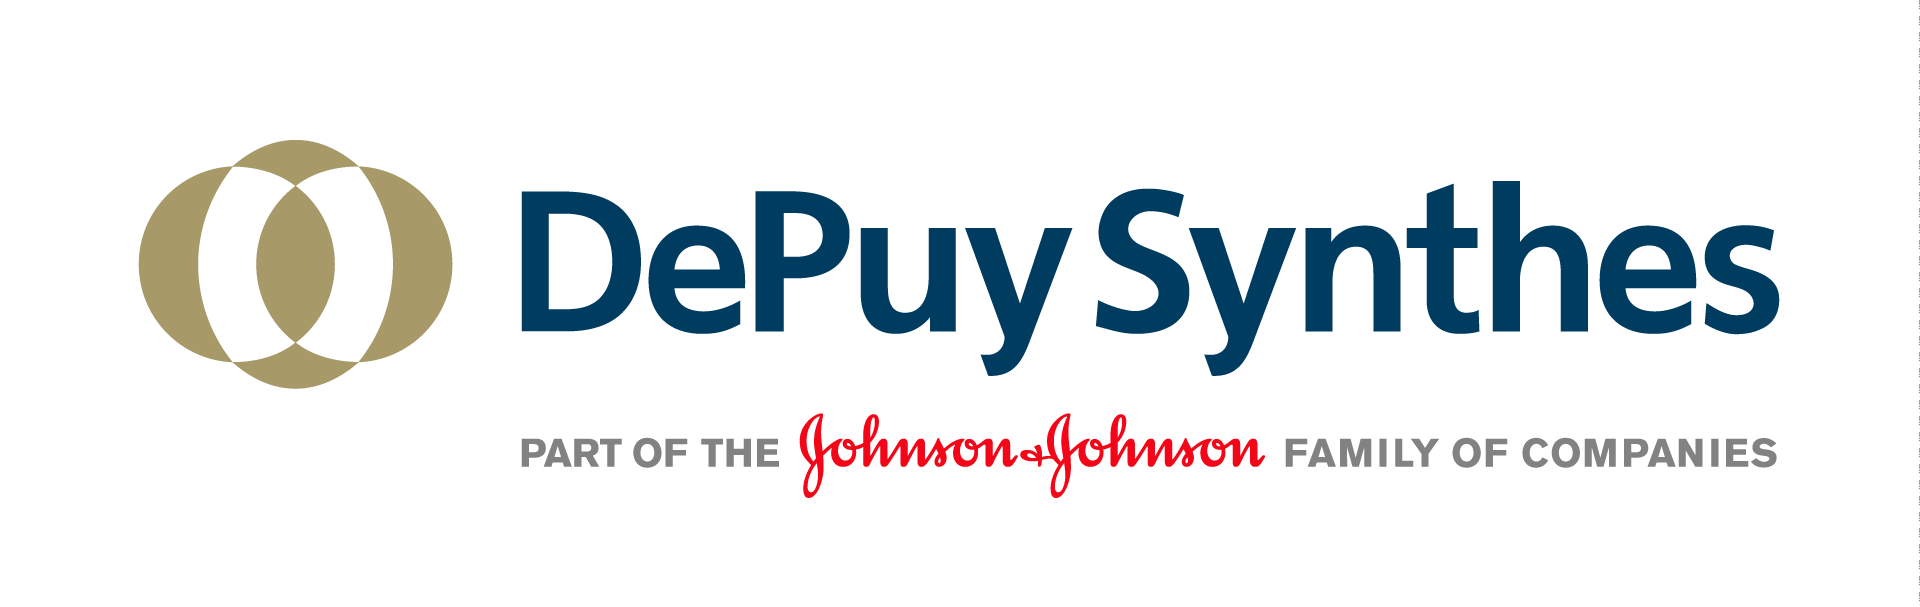 Johnson and Johnson DePuy Synthes